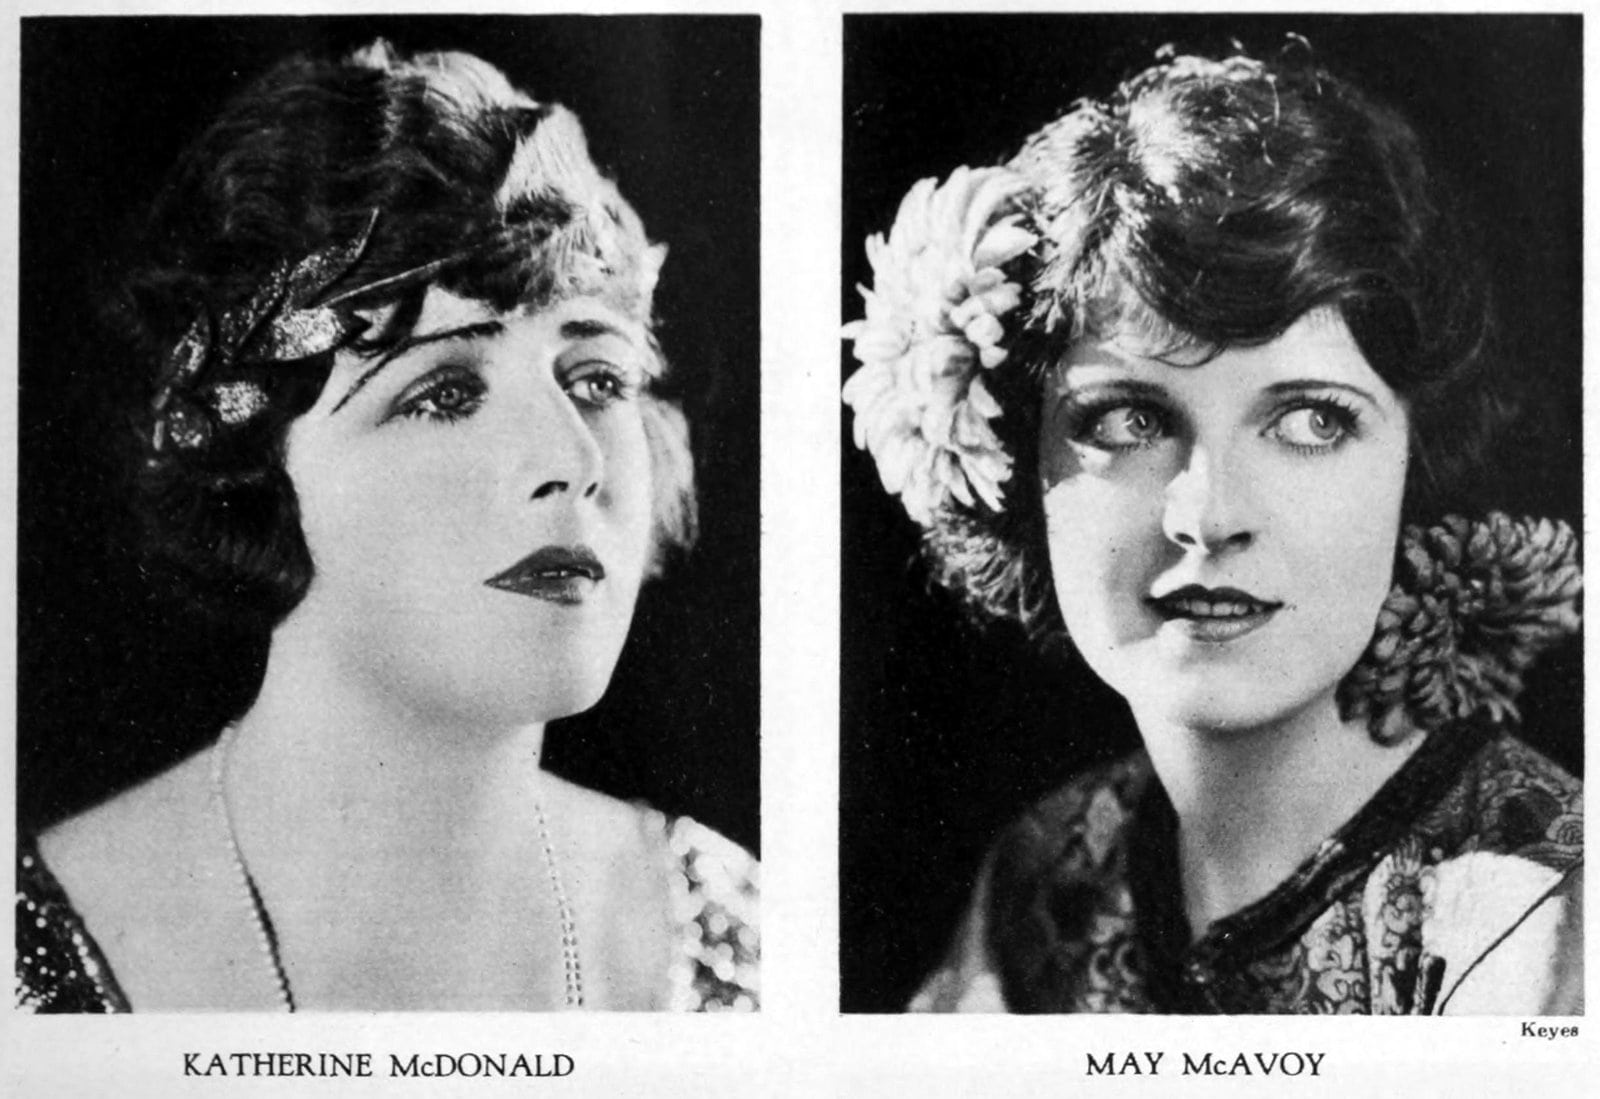 Vintage 1920s hairstyles for women - actresses Katherine McDonald and May McAvoy